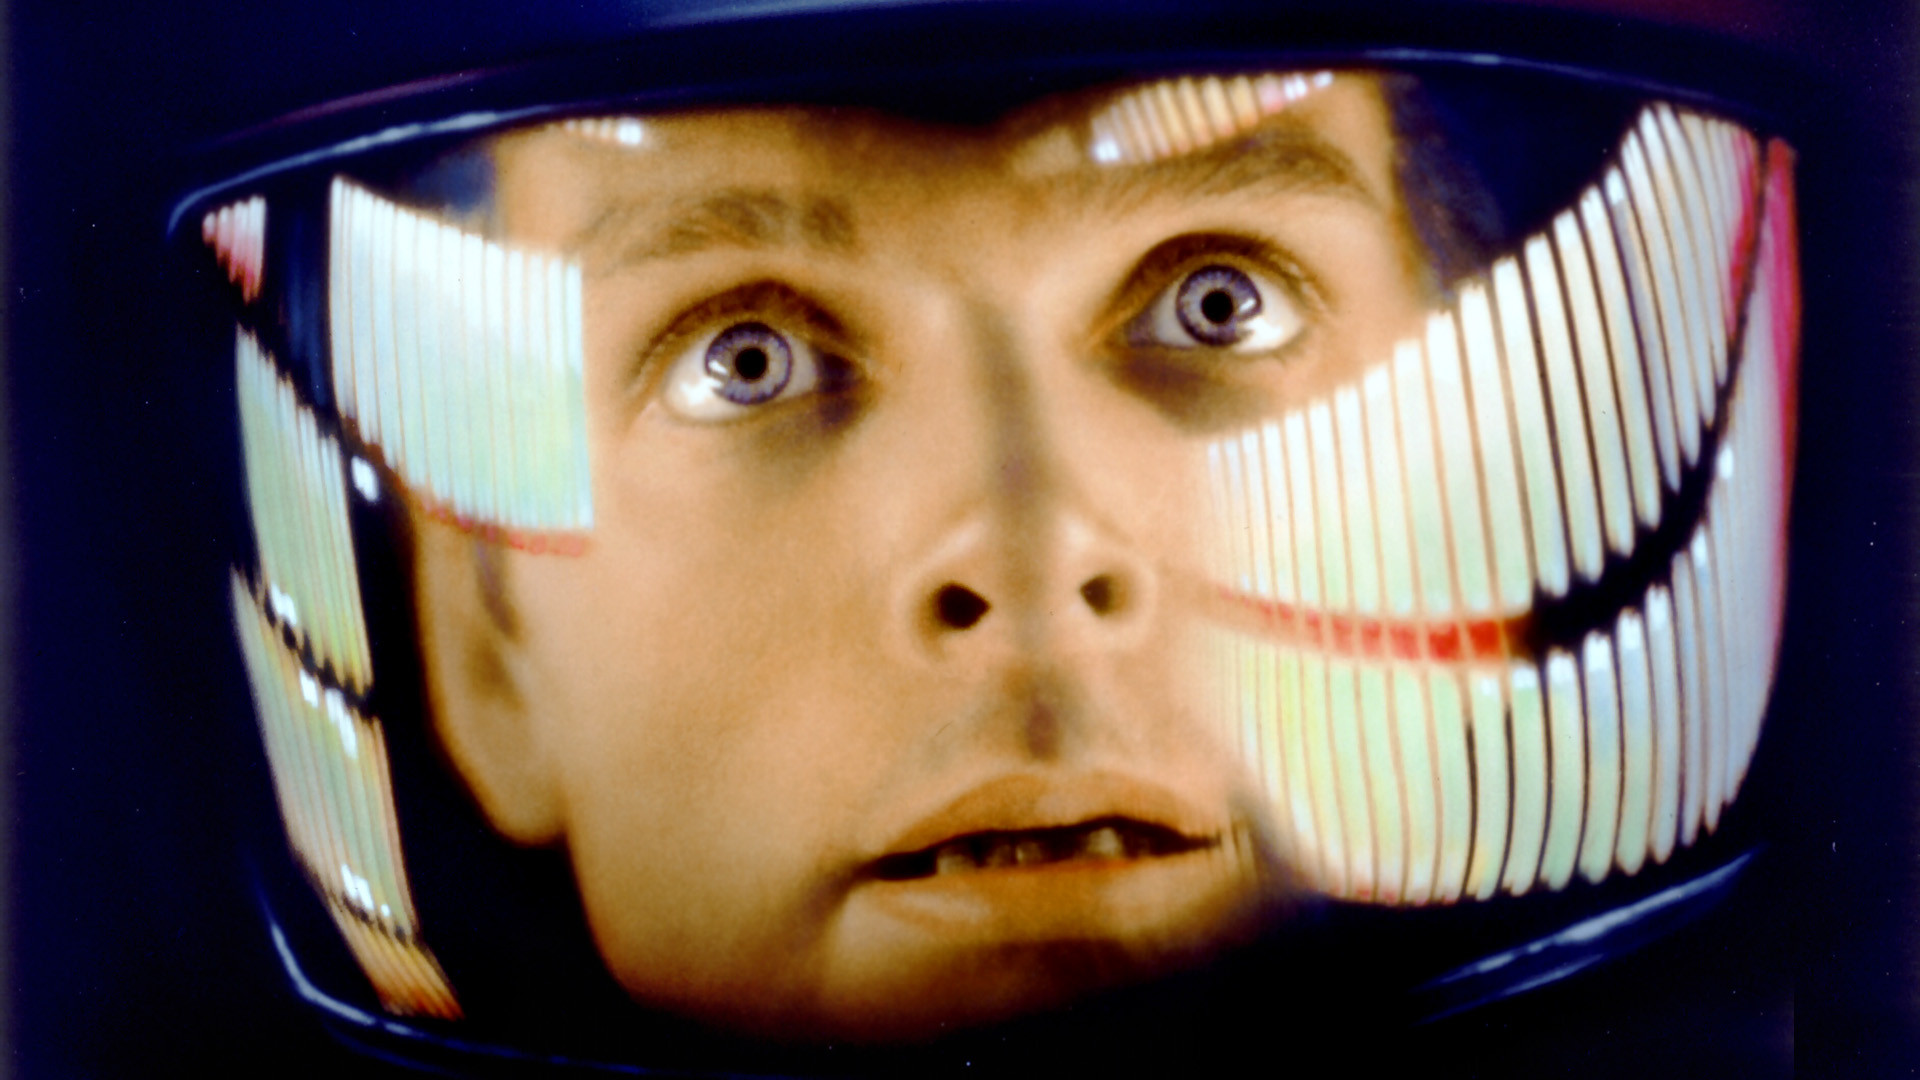 2001: A Space Odyssey, movies/tv, relationships, school, science & tech